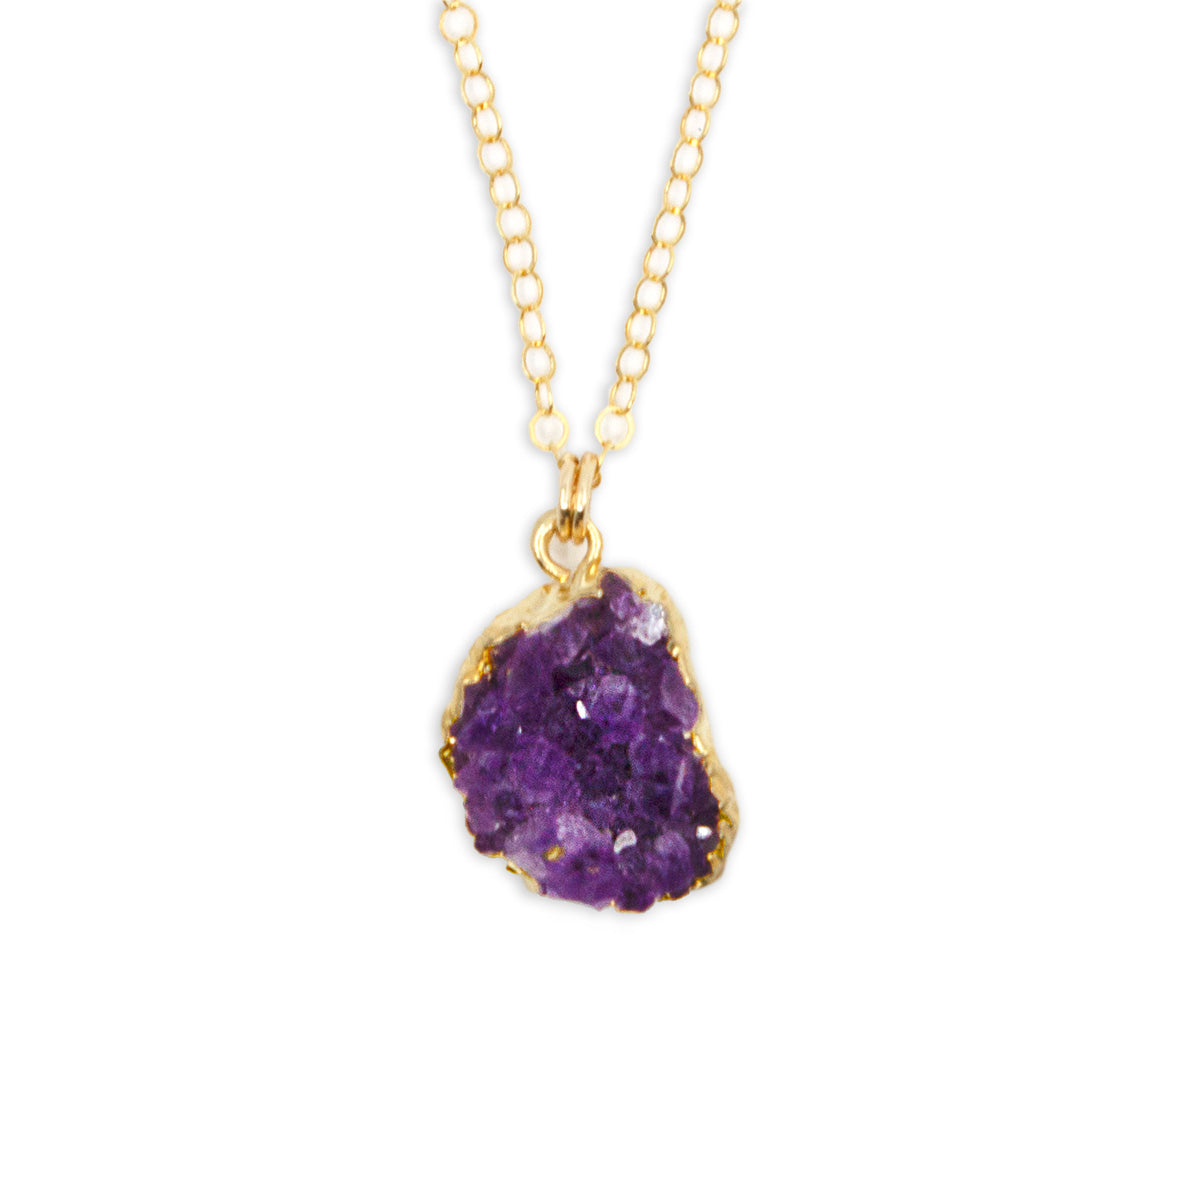 Amethyst Druzy Pendant Necklace, on Silver or Gold, Limited Edition